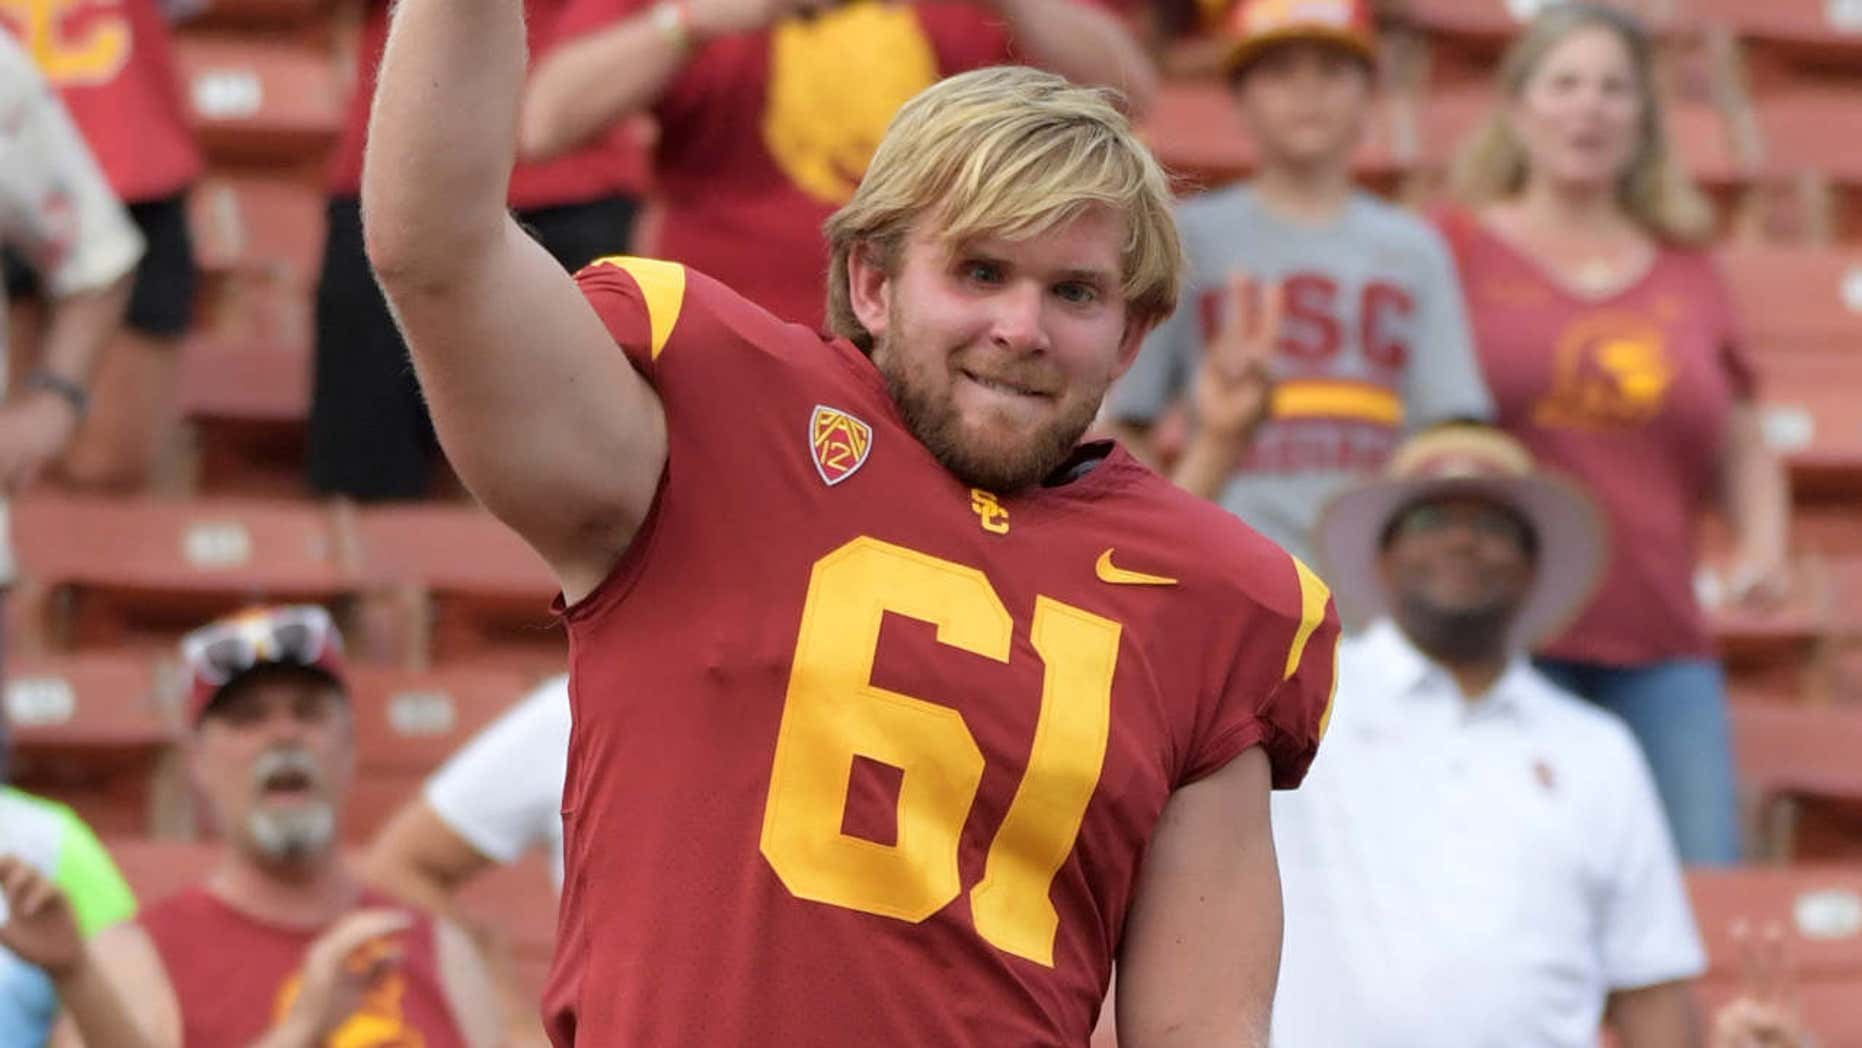 USC Trojans long snapper Jake Olson (61), who is blind, conducts the Spirit of Troy marching band after snapping the extra point in the fourth quarter against the Western Michigan Broncos during a NCAA football game at Los Angeles Memorial Coliseum.